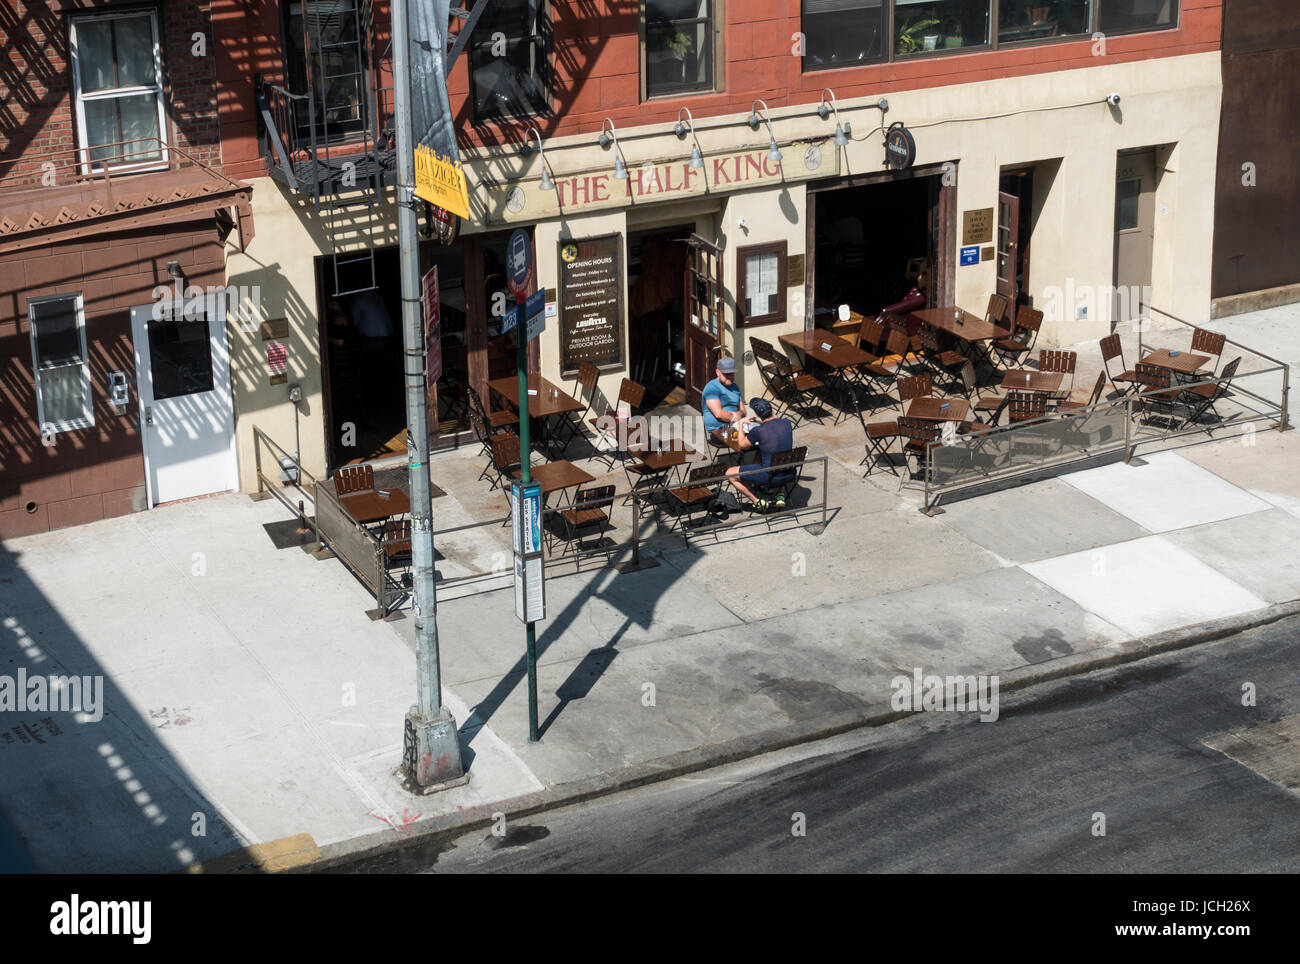 Two men at a table outside The Half King, one of New York's writers bar - Stock Image